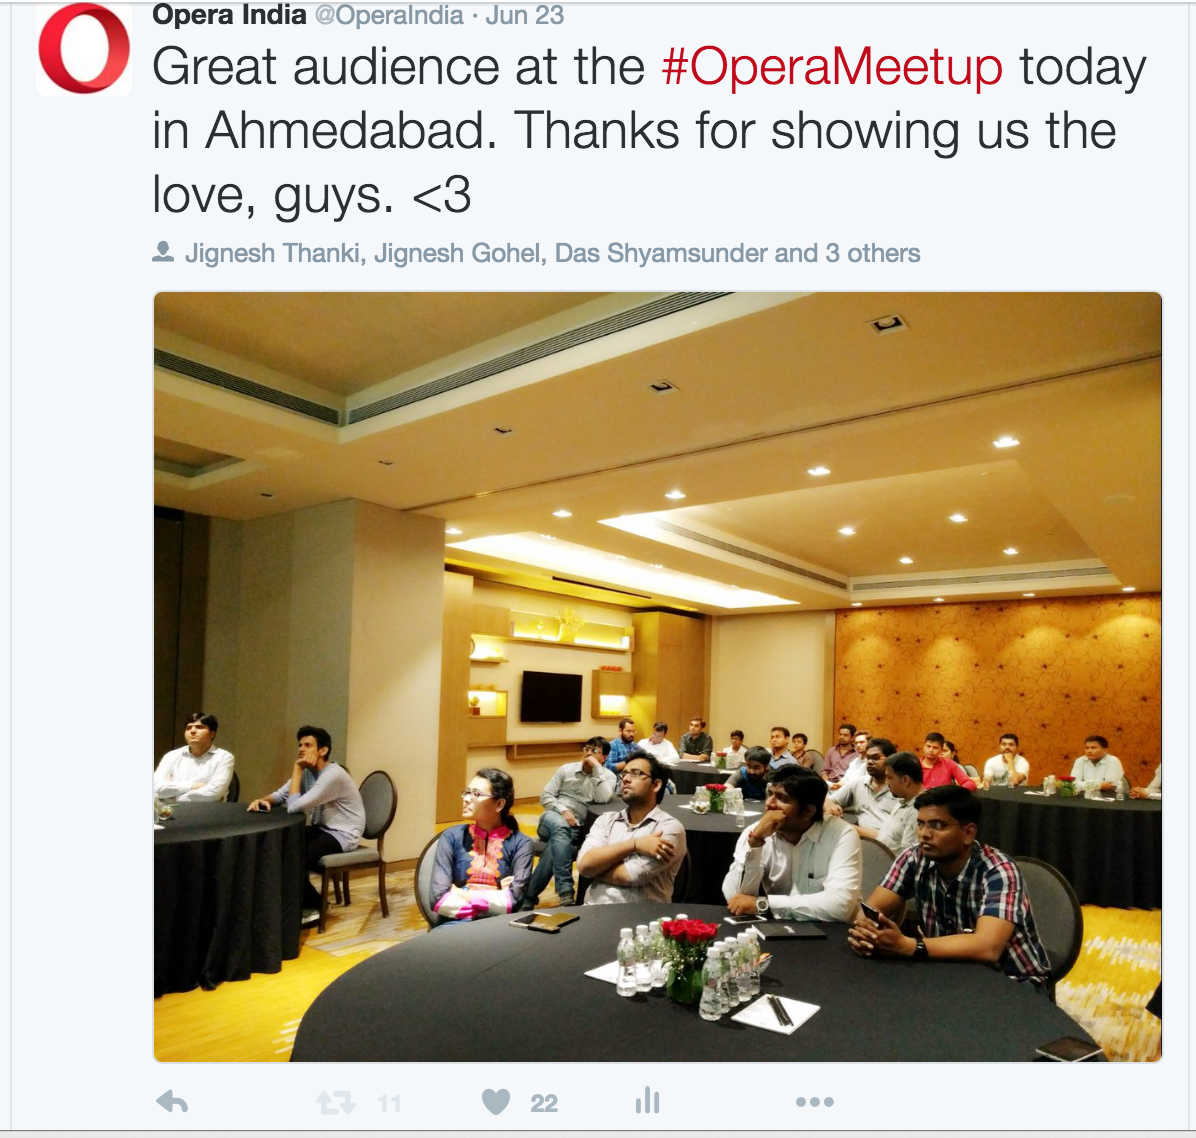 audience at opera meetup